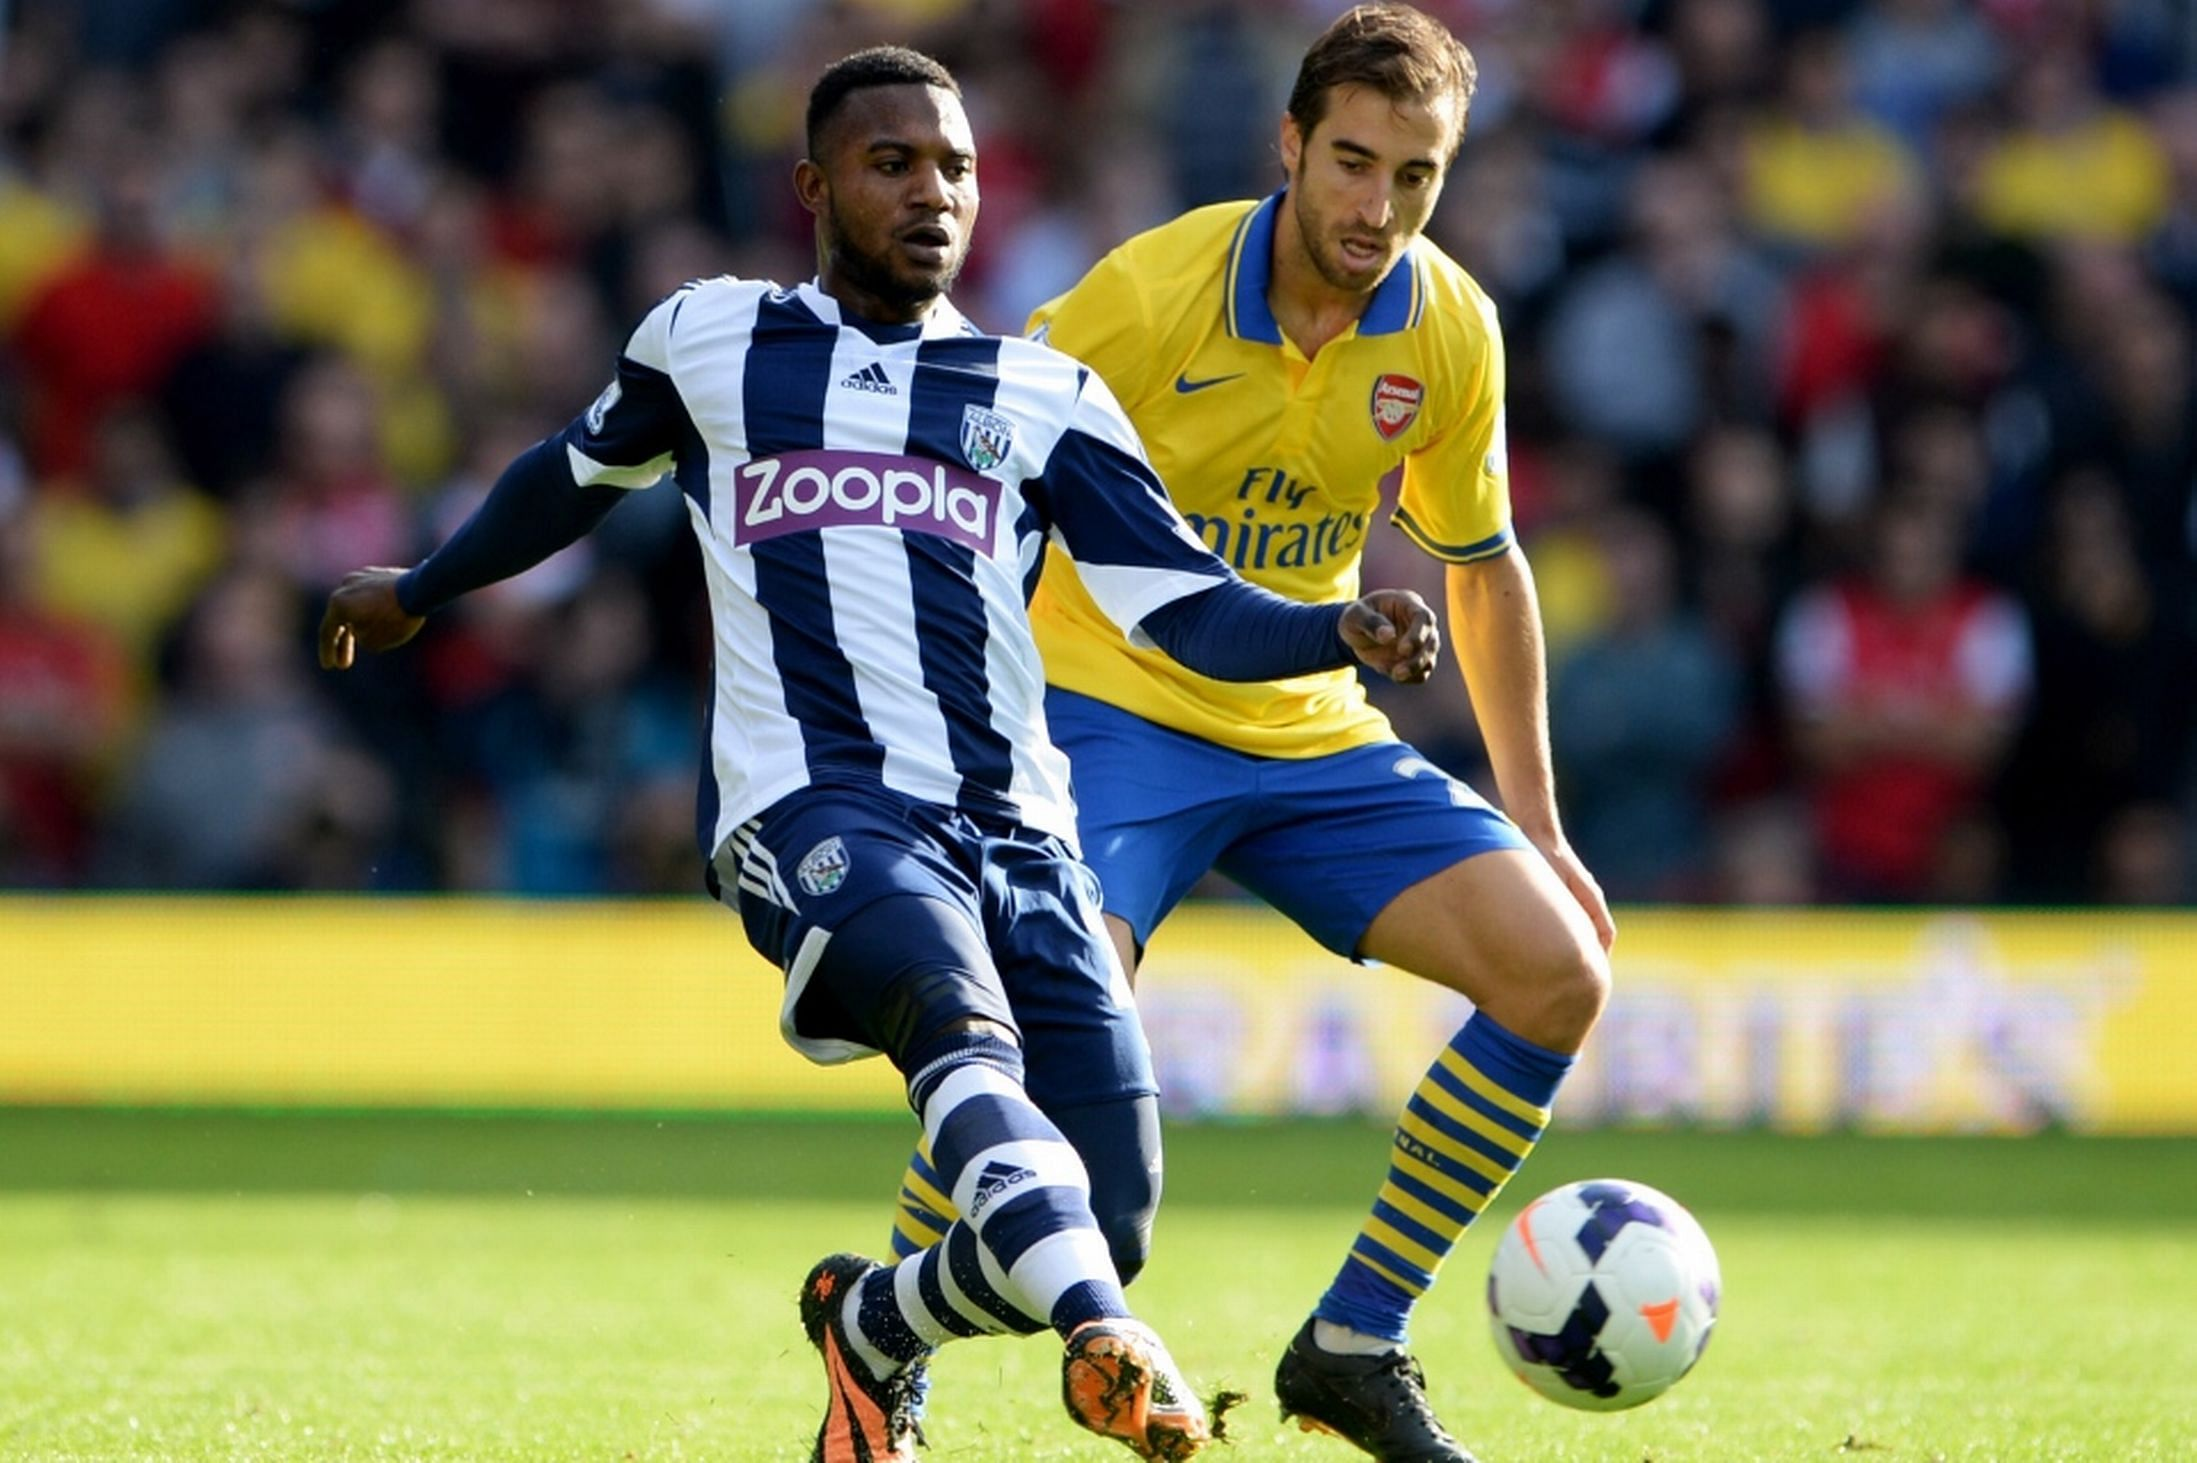 Match Review: West Brom 1 -1 Arsenal